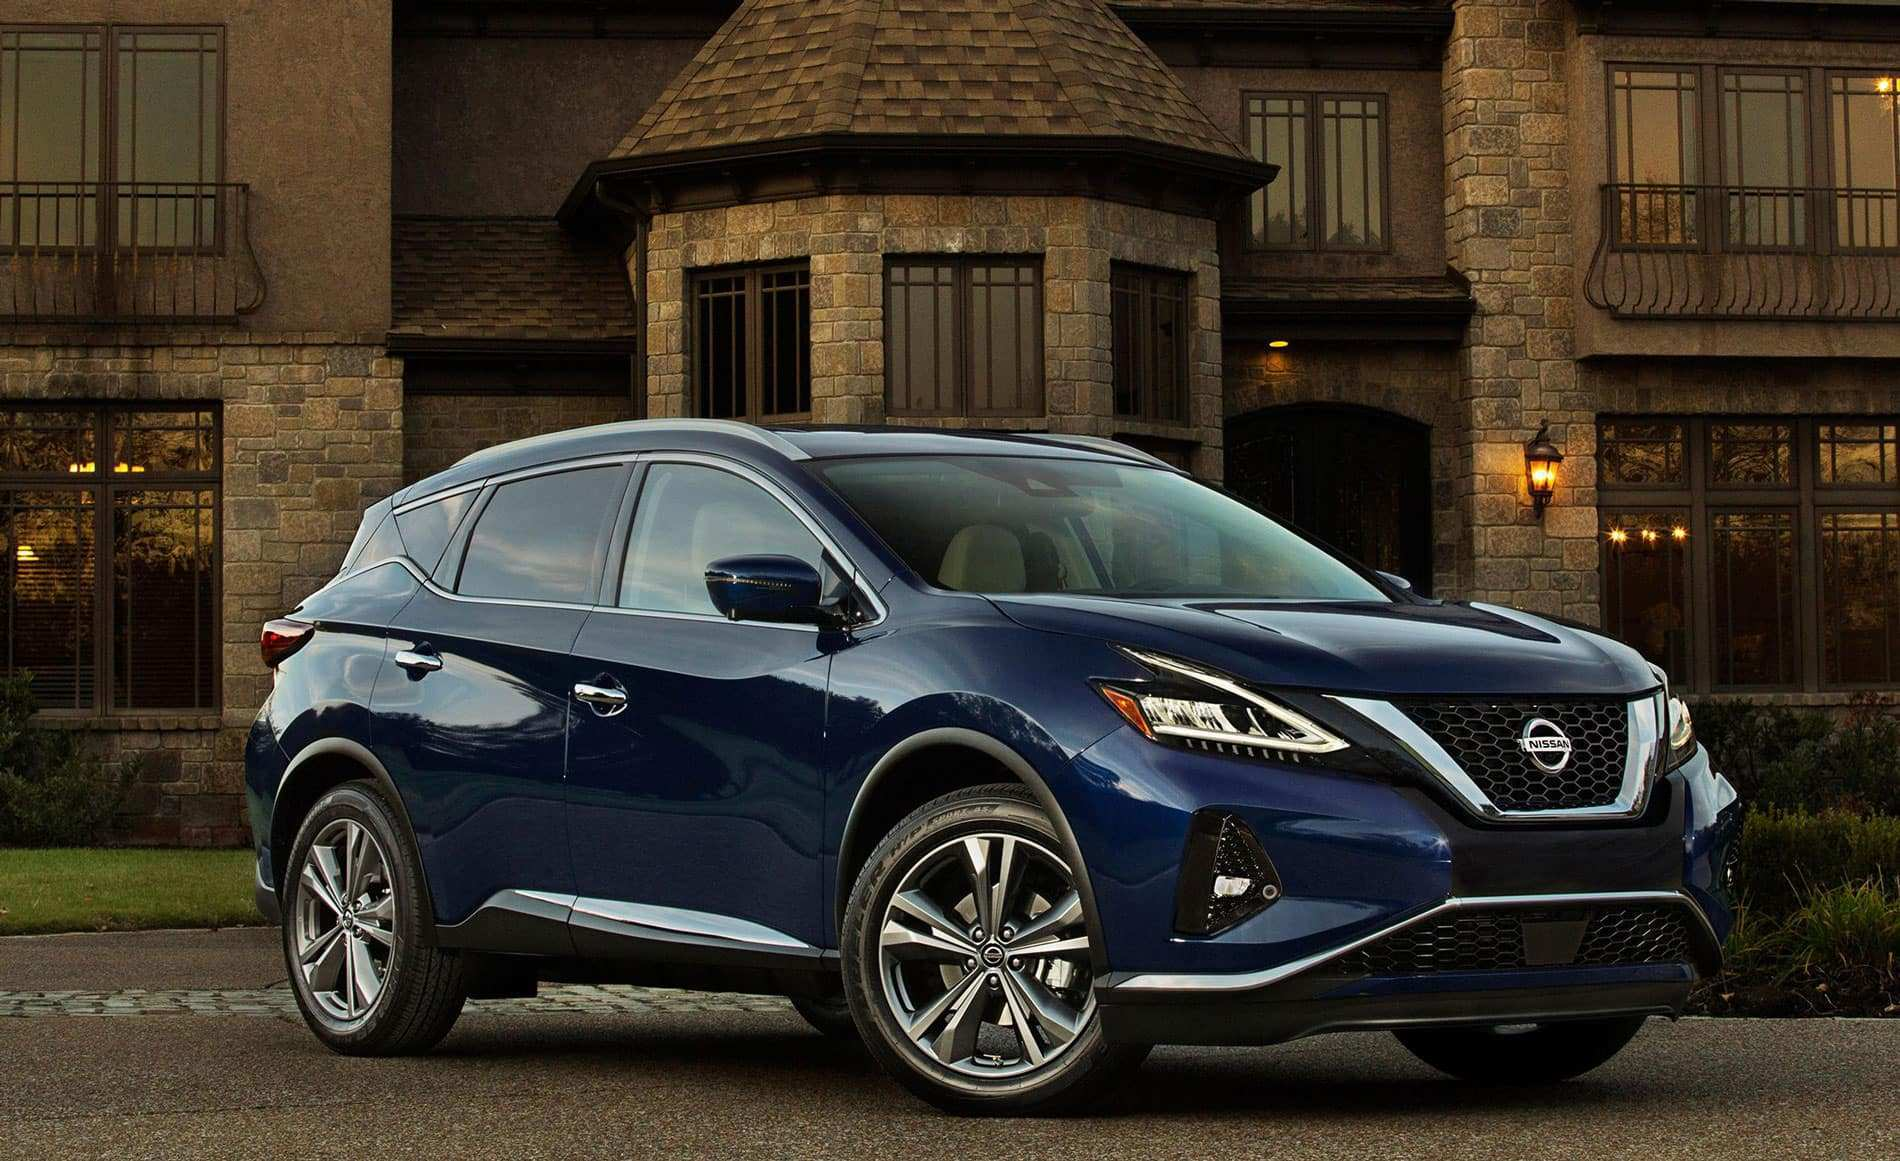 80 All New New Murano Nissan 2019 Picture Price and Review with New Murano Nissan 2019 Picture